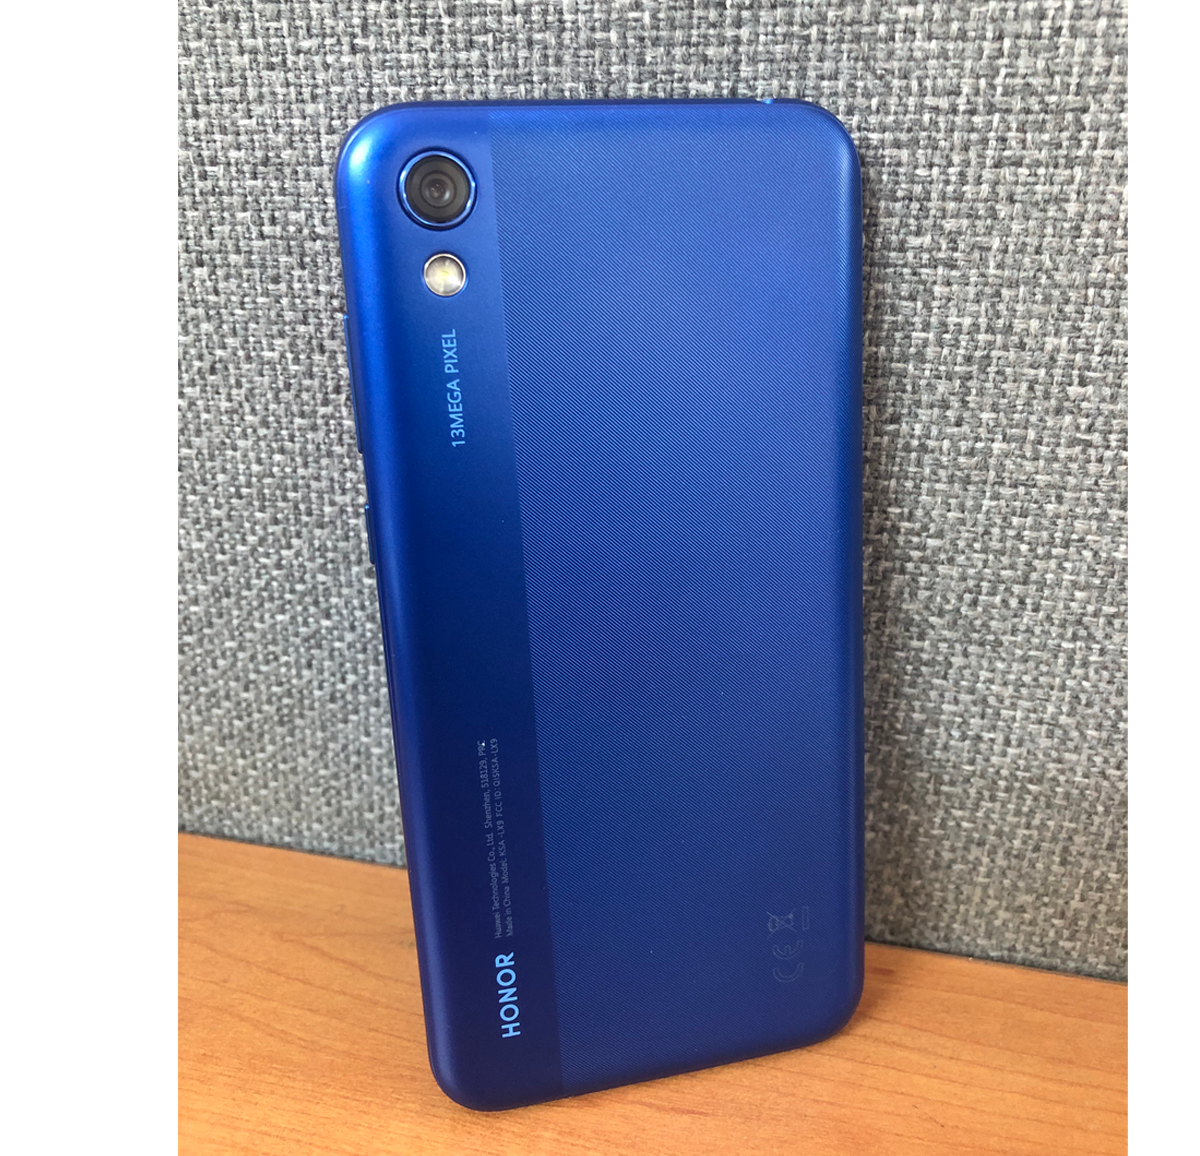 Honor 8S Review